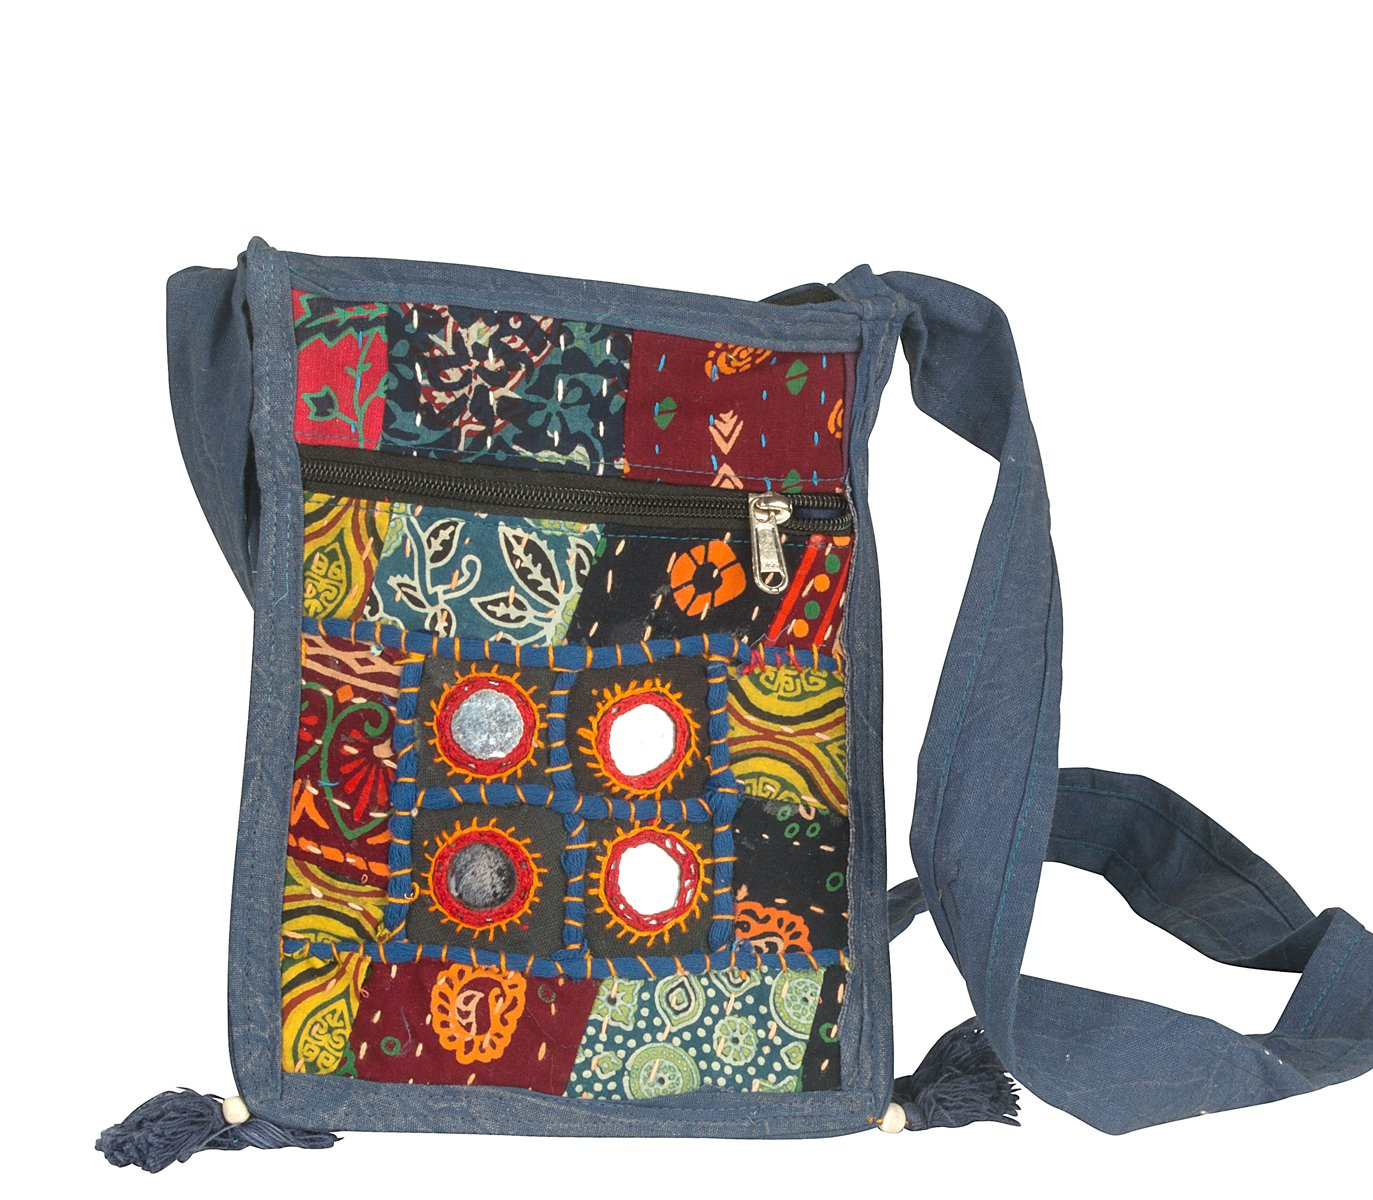 Small Messenger Crossbody Satchel Shoulder Bag Floral Purse Colorful Organizer Cellphone Ipad Hobo (Mirror Patchwork) by Tribe Azure Fair Trade (Image #1)